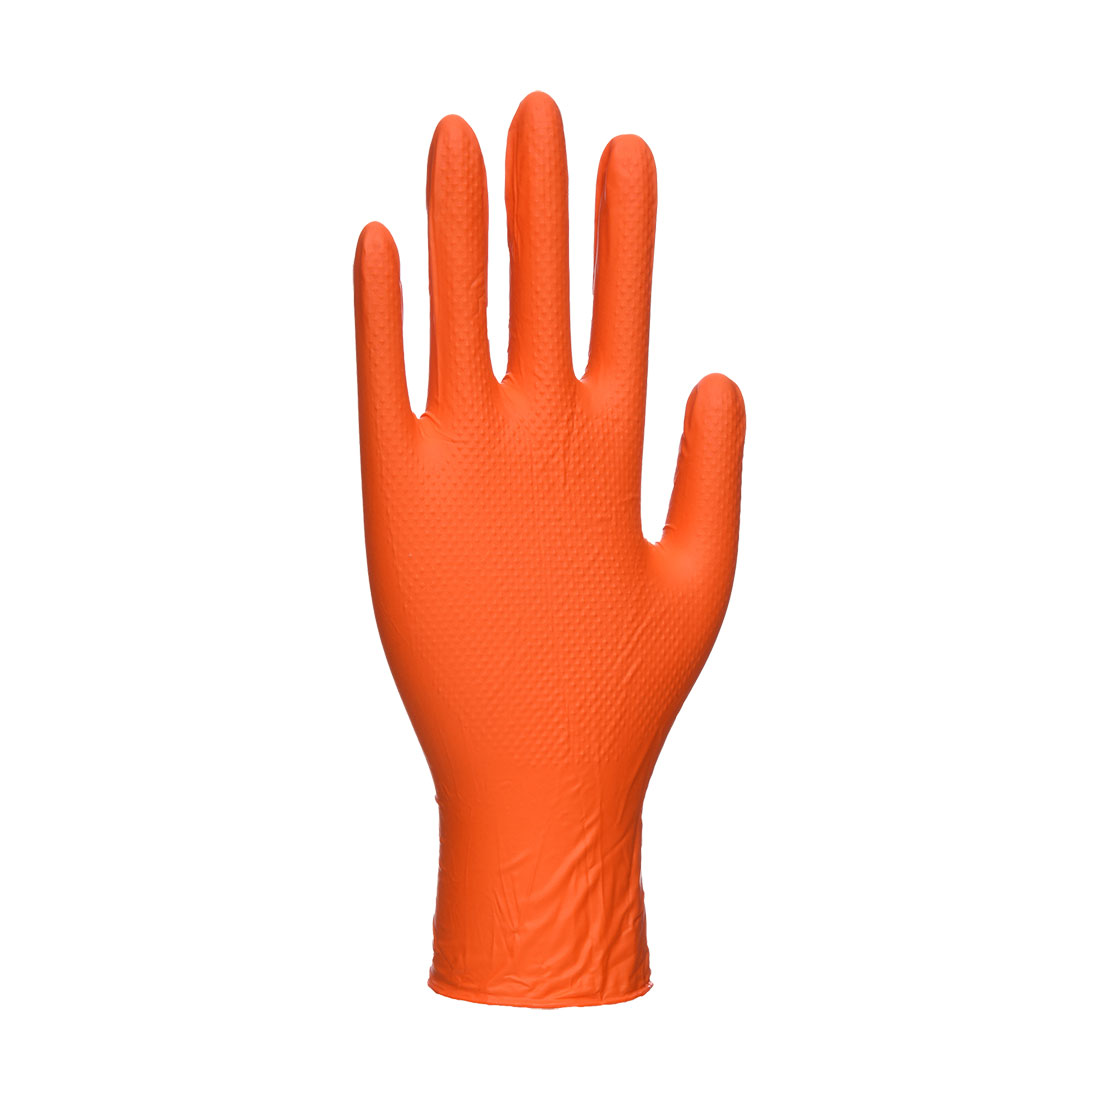 Portwest Orange HD Disposable Gloves Orange XL